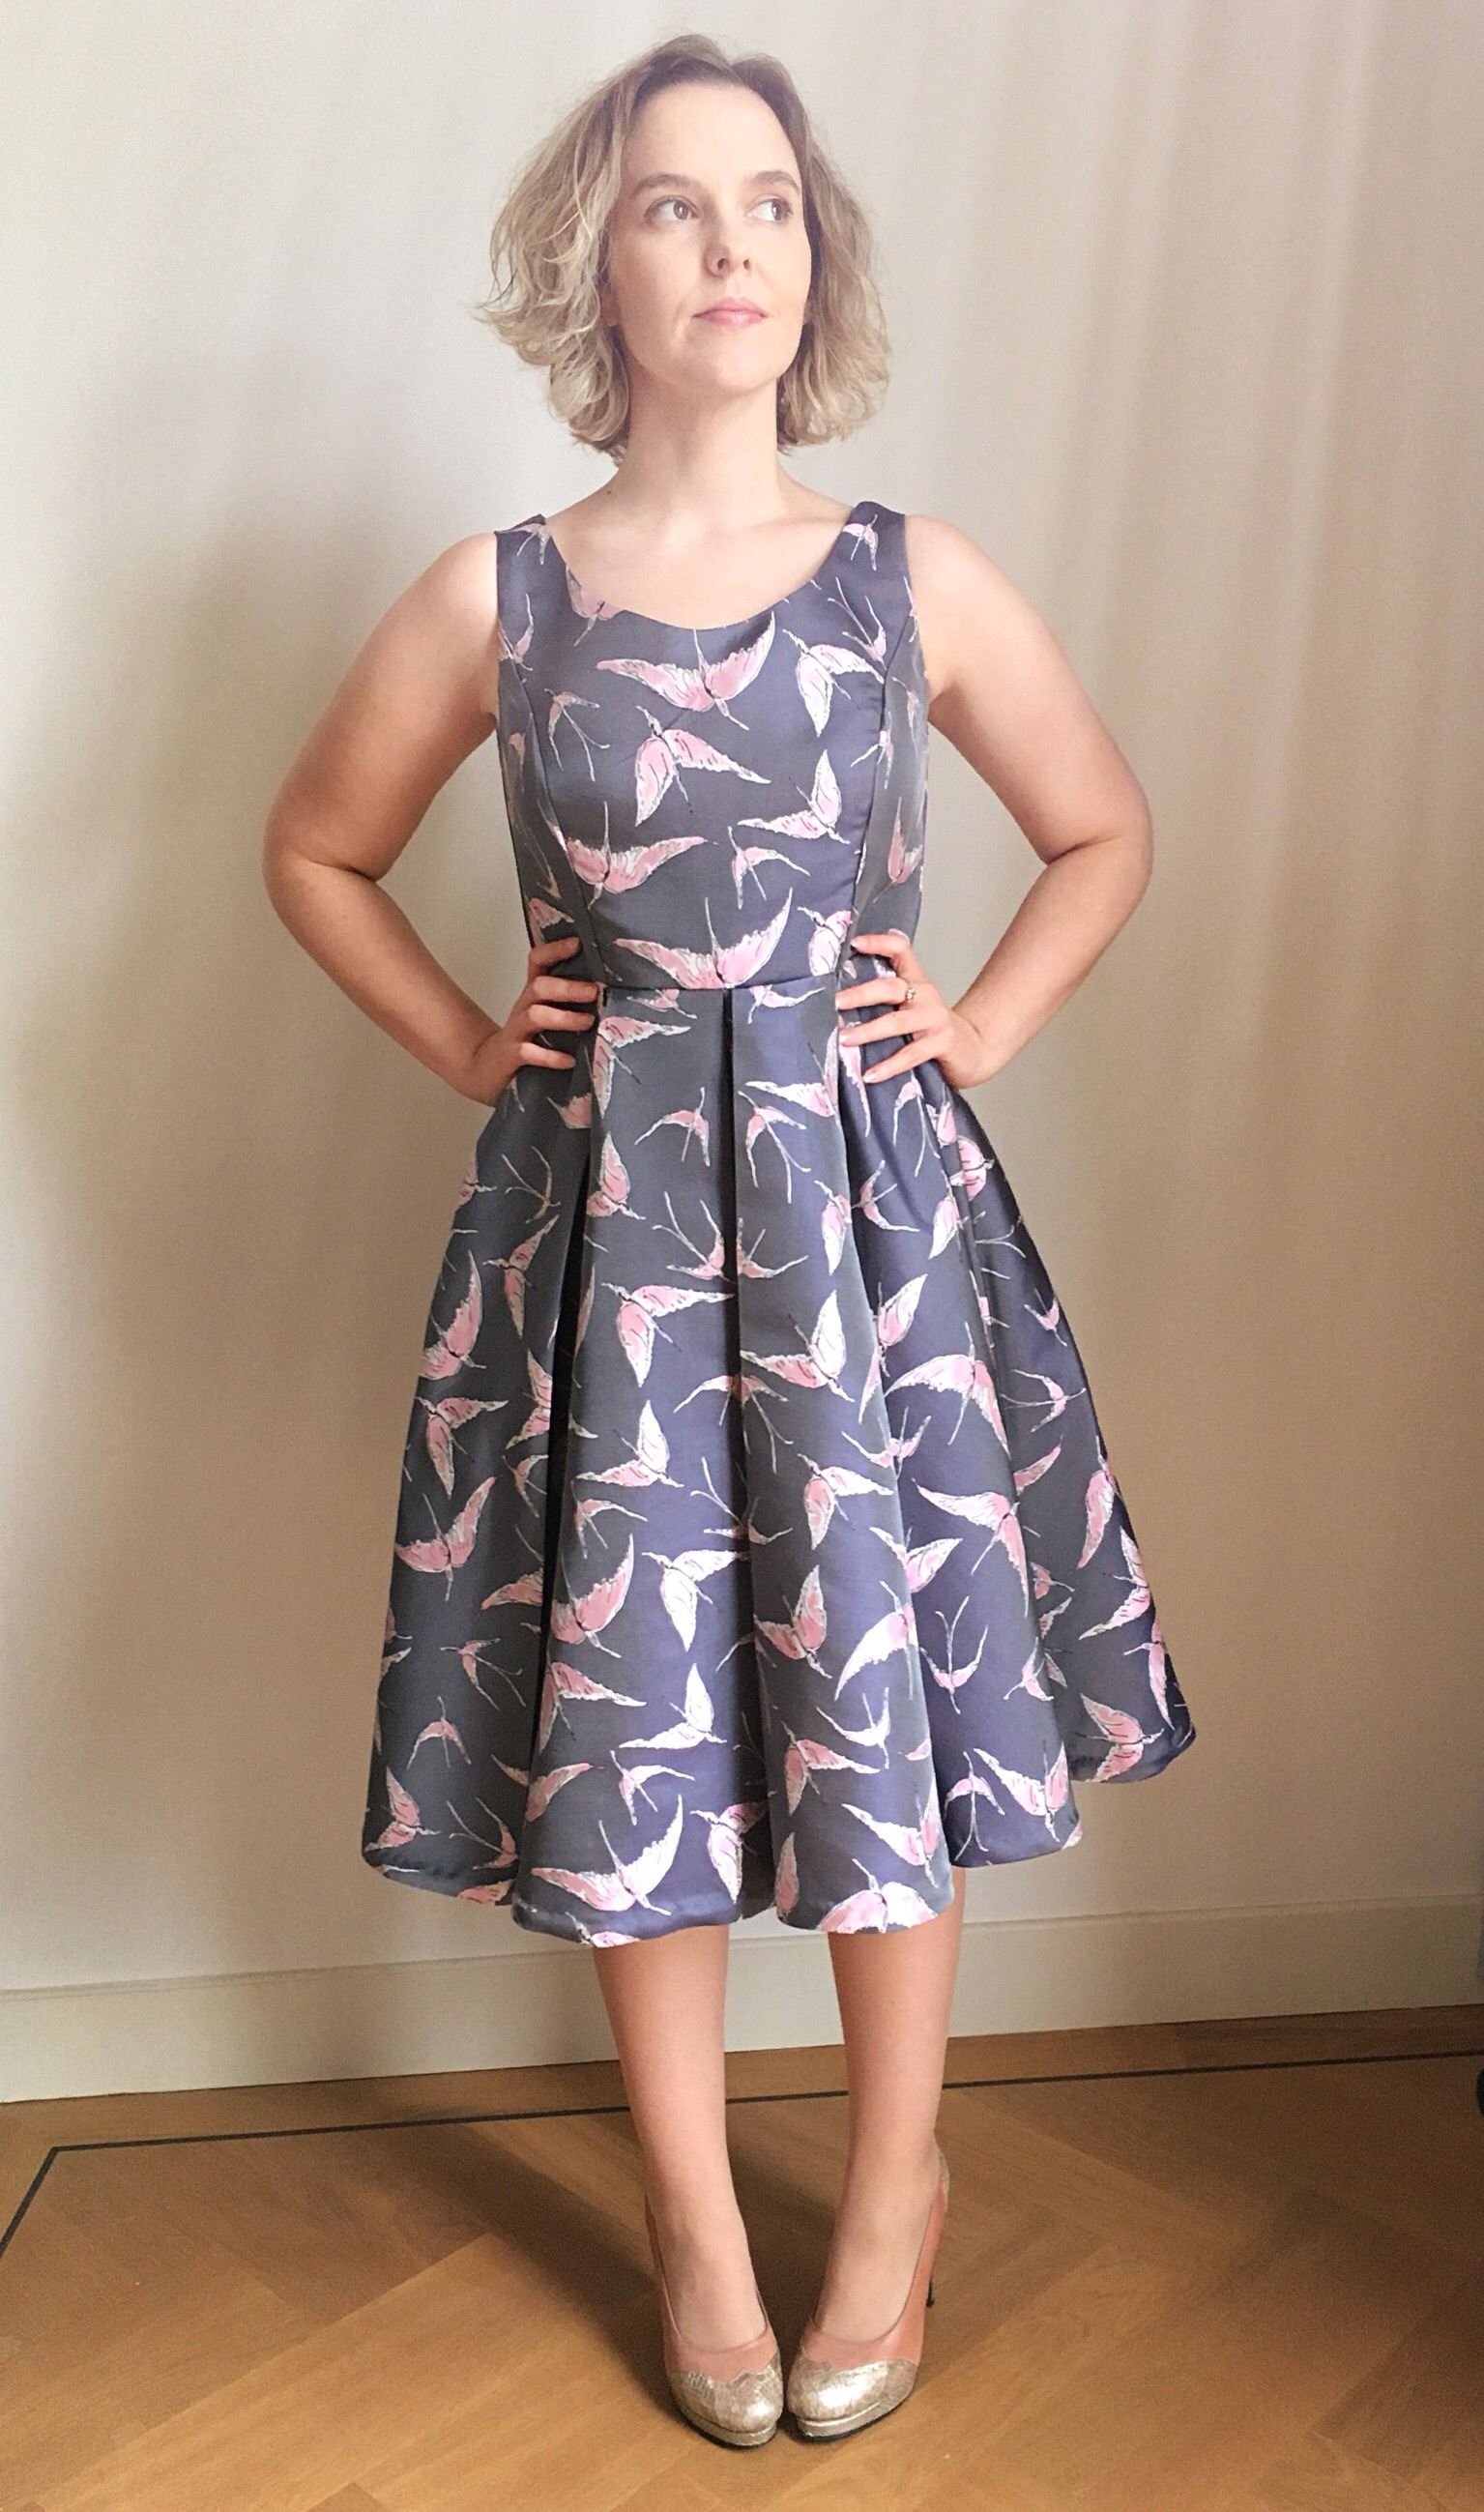 Box pleats, circle skirt, princess seams, sweetheart neckline - I love the Elsie Dress from Sew Over It!